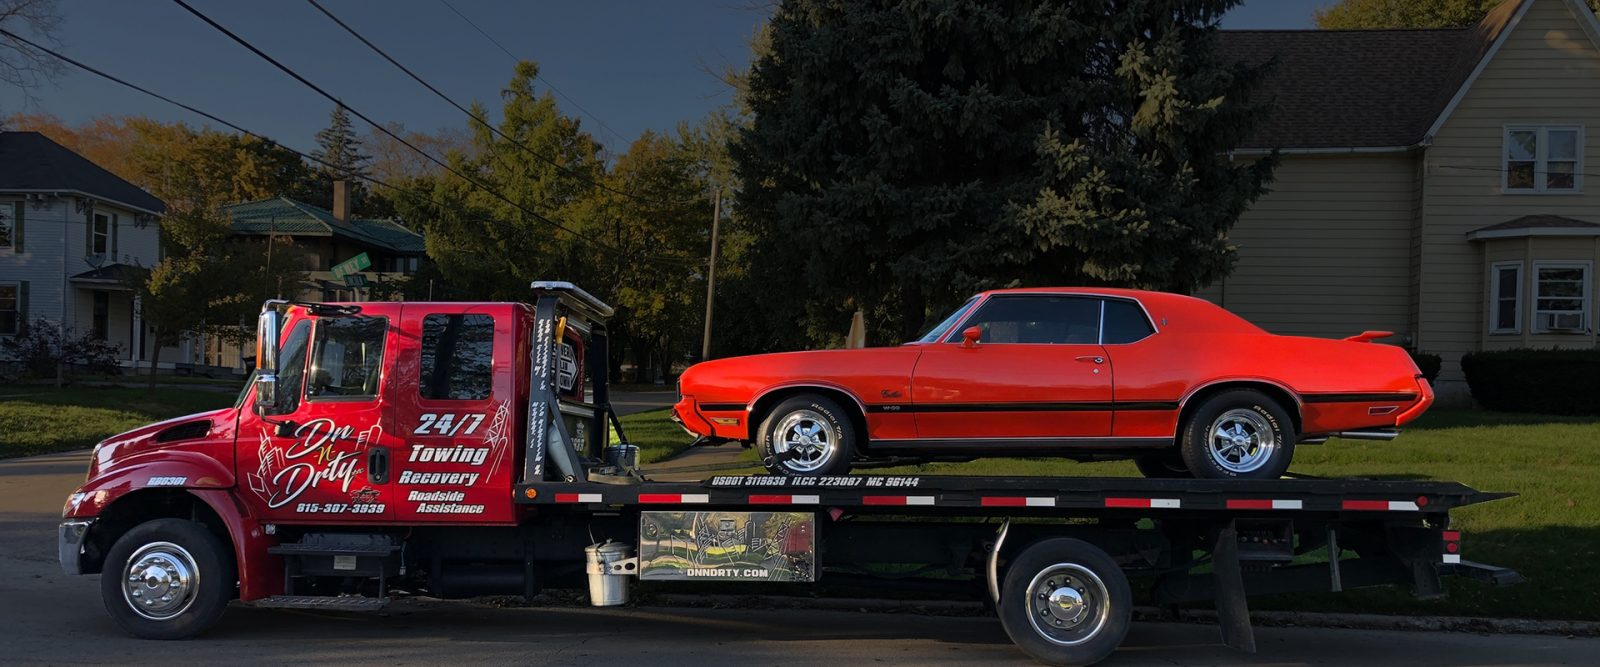 DnNDrty Towing